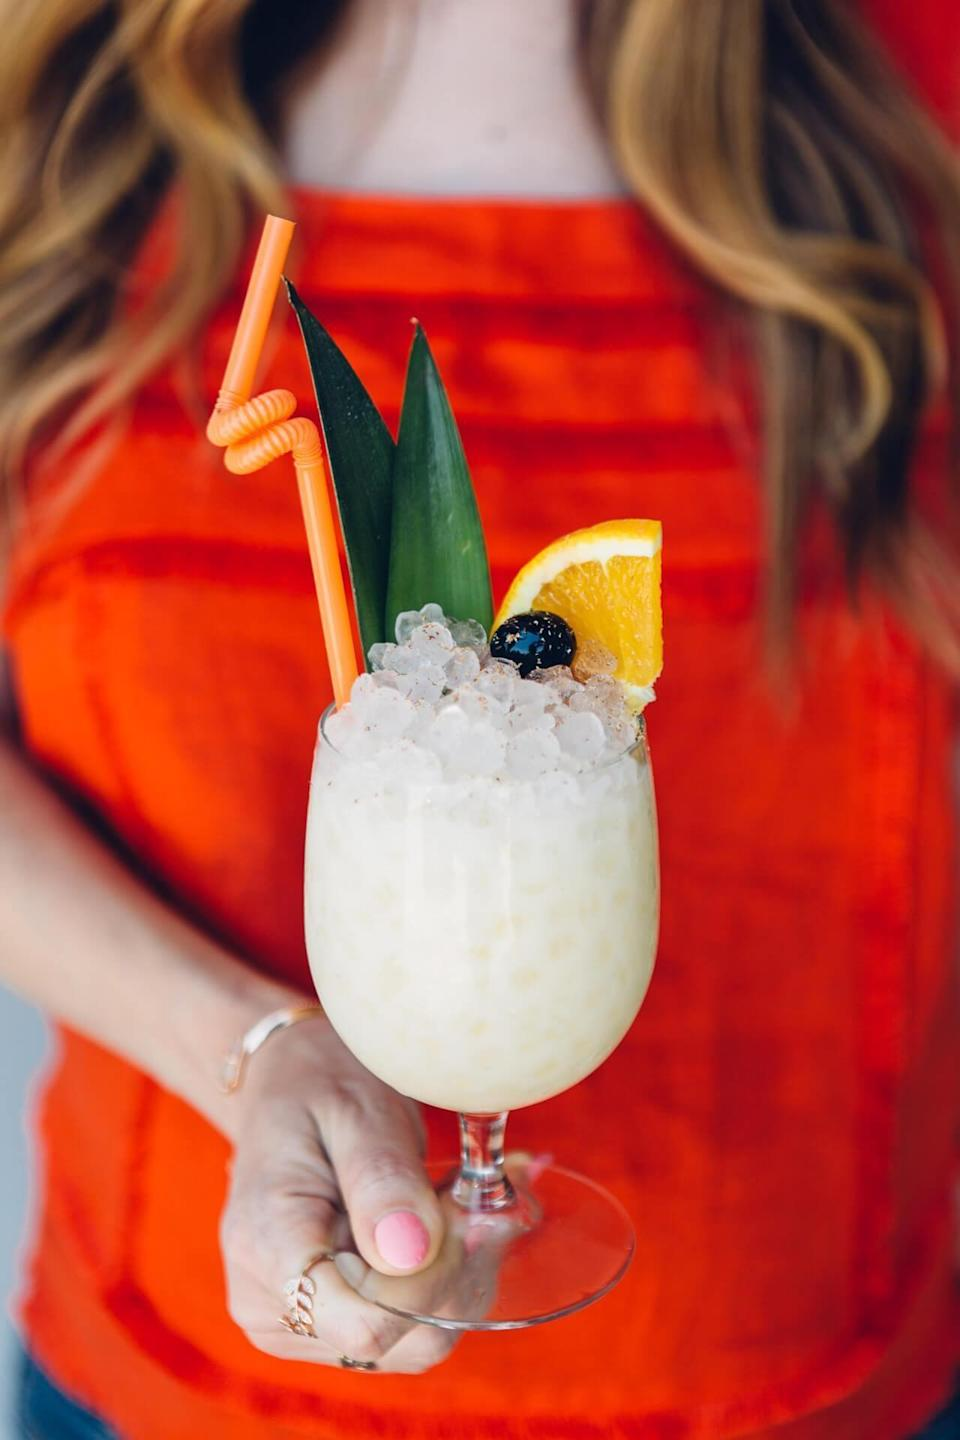 """<p>Mississippi, we feel you. This twist on the piña colada is made with pineapple juice, coconut cream, and orange juice, bringing the tropics right to your glass! Add as much rum as you please to make it complete.</p> <p><strong>Get the recipe</strong>: <a href=""""https://www.popsugar.com/buy?url=https%3A%2F%2Fmlovesm.com%2F2016%2F07%2F3-summer-mocktails%2F&p_name=painkiller&retailer=mlovesm.com&evar1=yum%3Aus&evar9=47471653&evar98=https%3A%2F%2Fwww.popsugar.com%2Ffood%2Fphoto-gallery%2F47471653%2Fimage%2F47474529%2FMississippi-Painkiller&list1=cocktails%2Cdrinks%2Calcohol%2Crecipes&prop13=api&pdata=1"""" class=""""link rapid-noclick-resp"""" rel=""""nofollow noopener"""" target=""""_blank"""" data-ylk=""""slk:painkiller"""">painkiller</a></p>"""